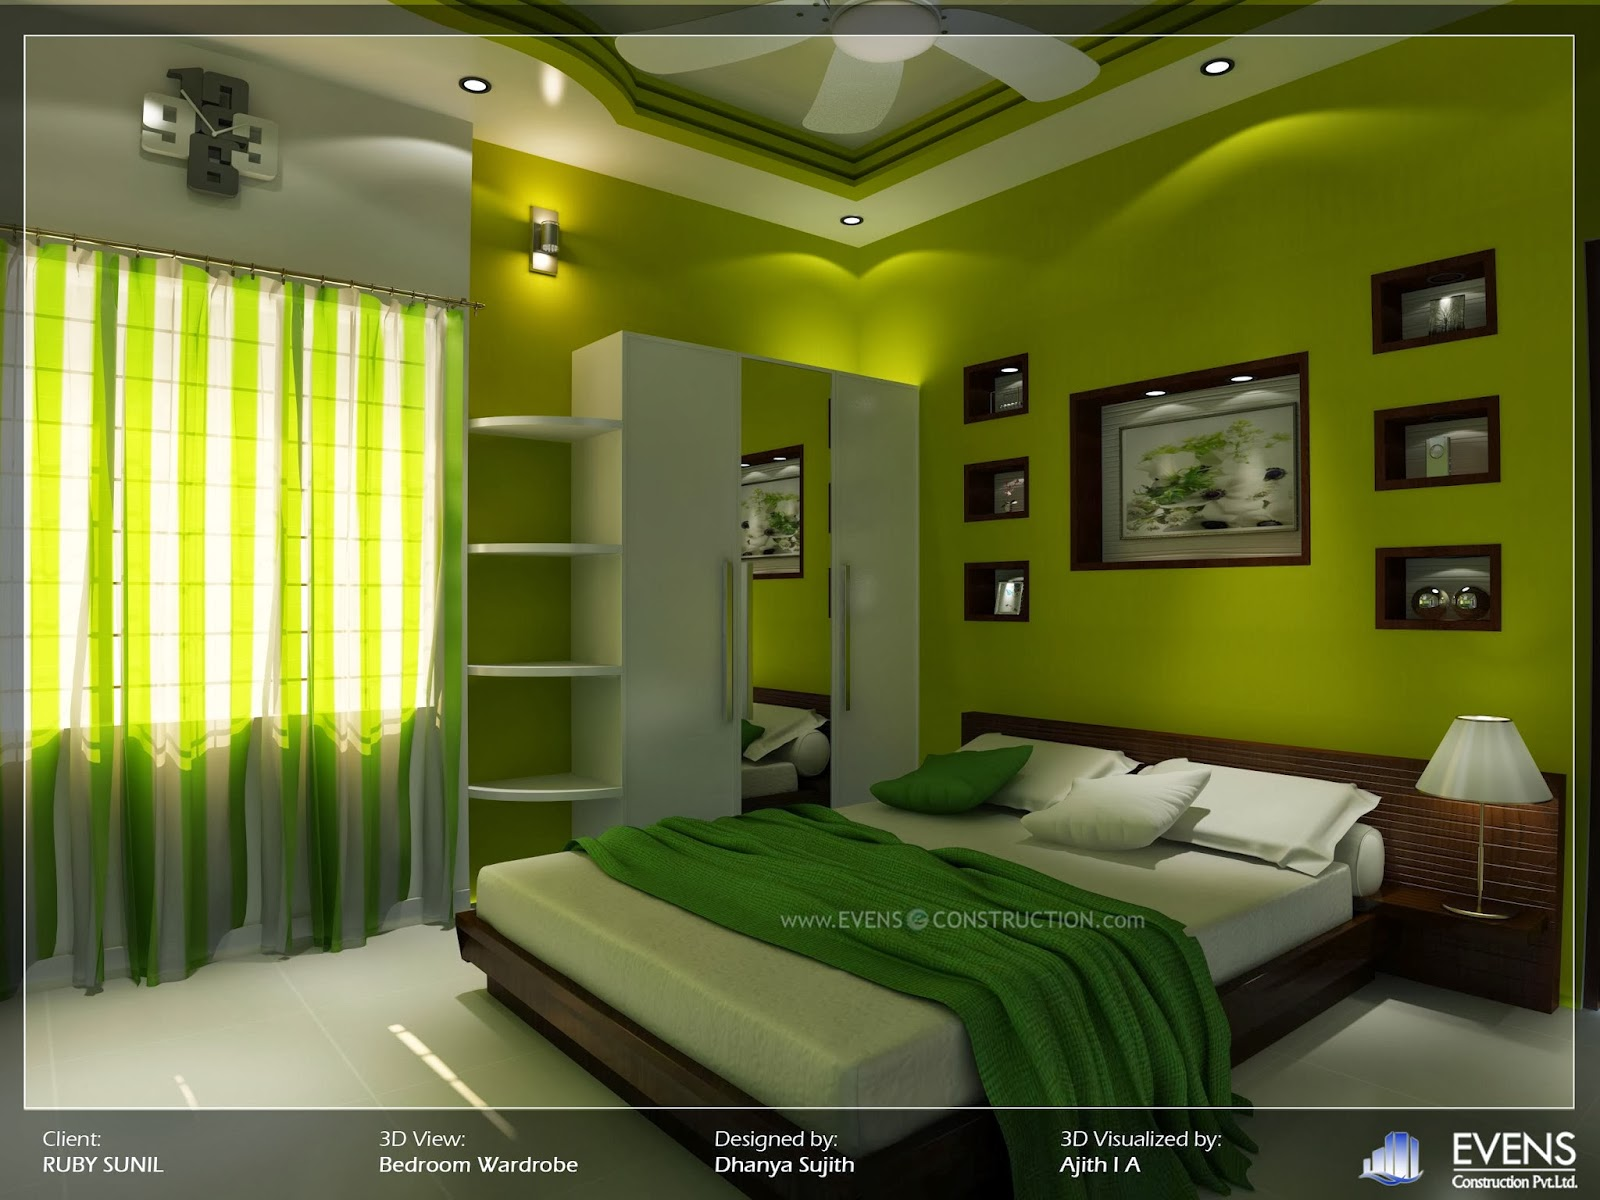 Evens Construction Pvt Ltd Bedroom With Yellow Green Walls